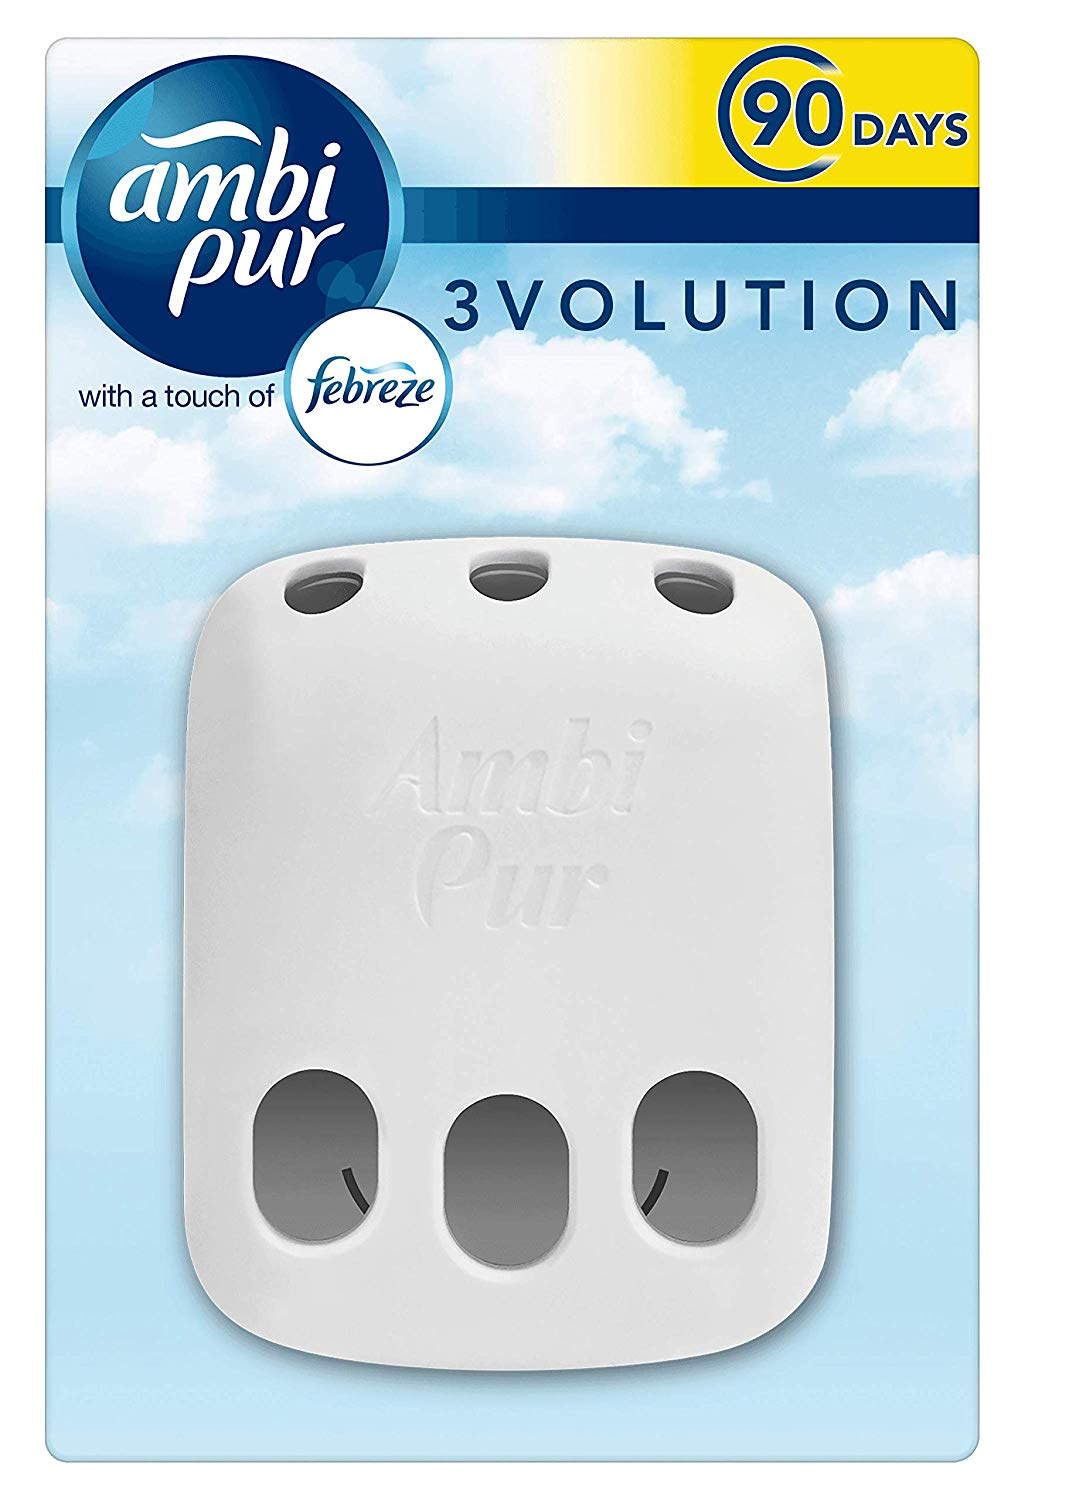 Pack of 3 – Febreze with Ambi Pur 3Volution Air Freshener Plug-In Diffuser